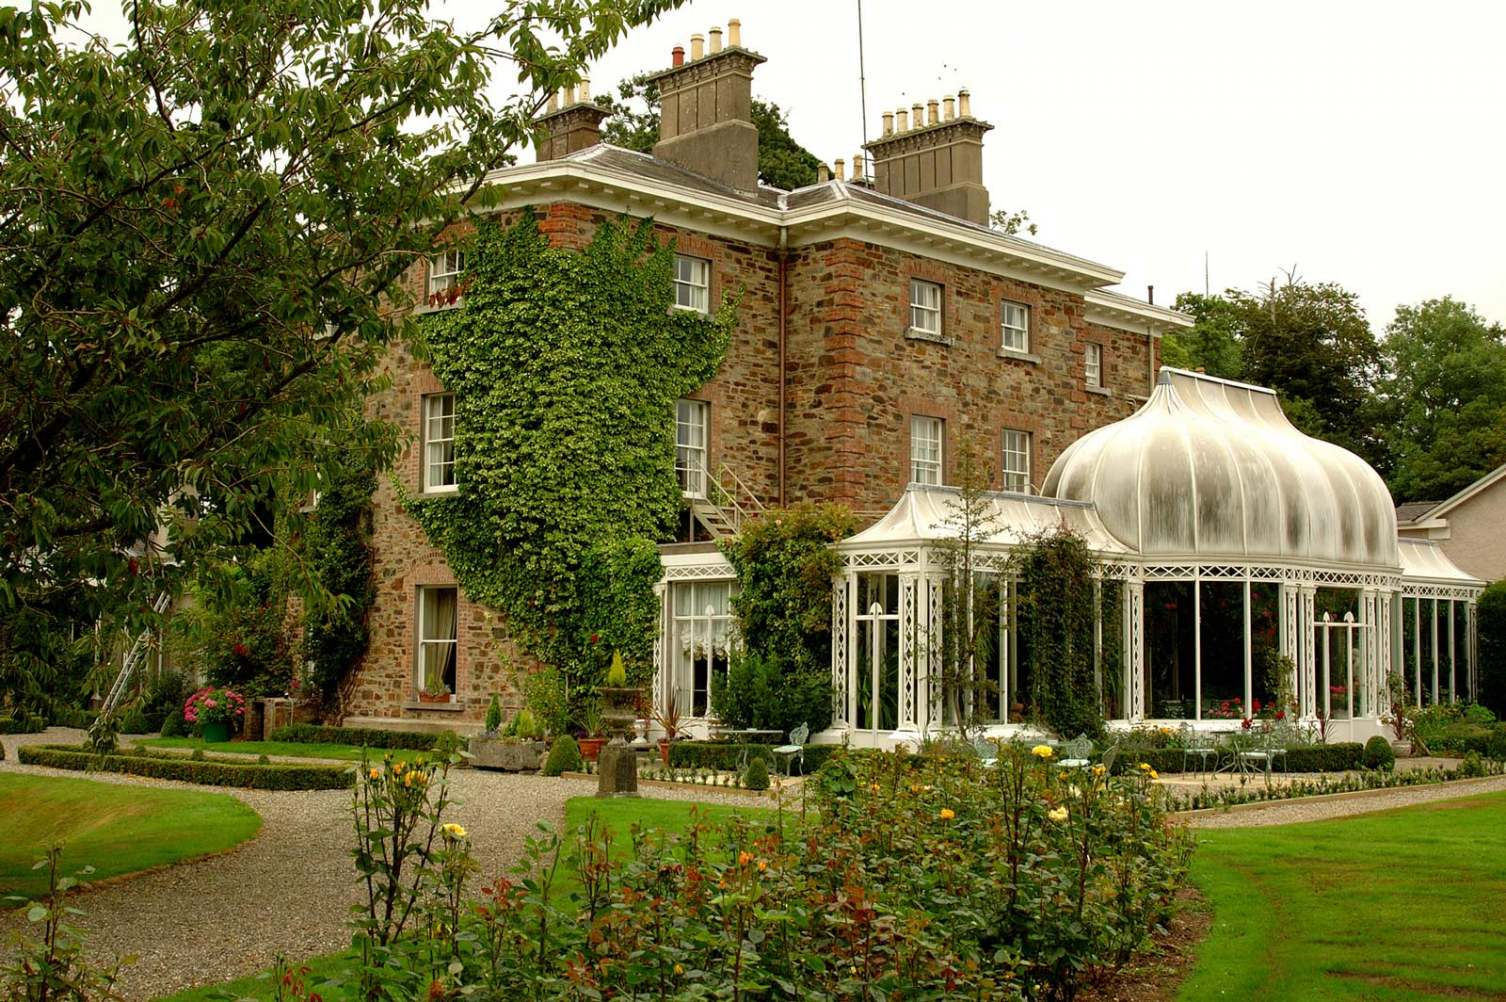 Marlfield House Luxury Country House Hotel in Gorey, Co Wexford, Ireland